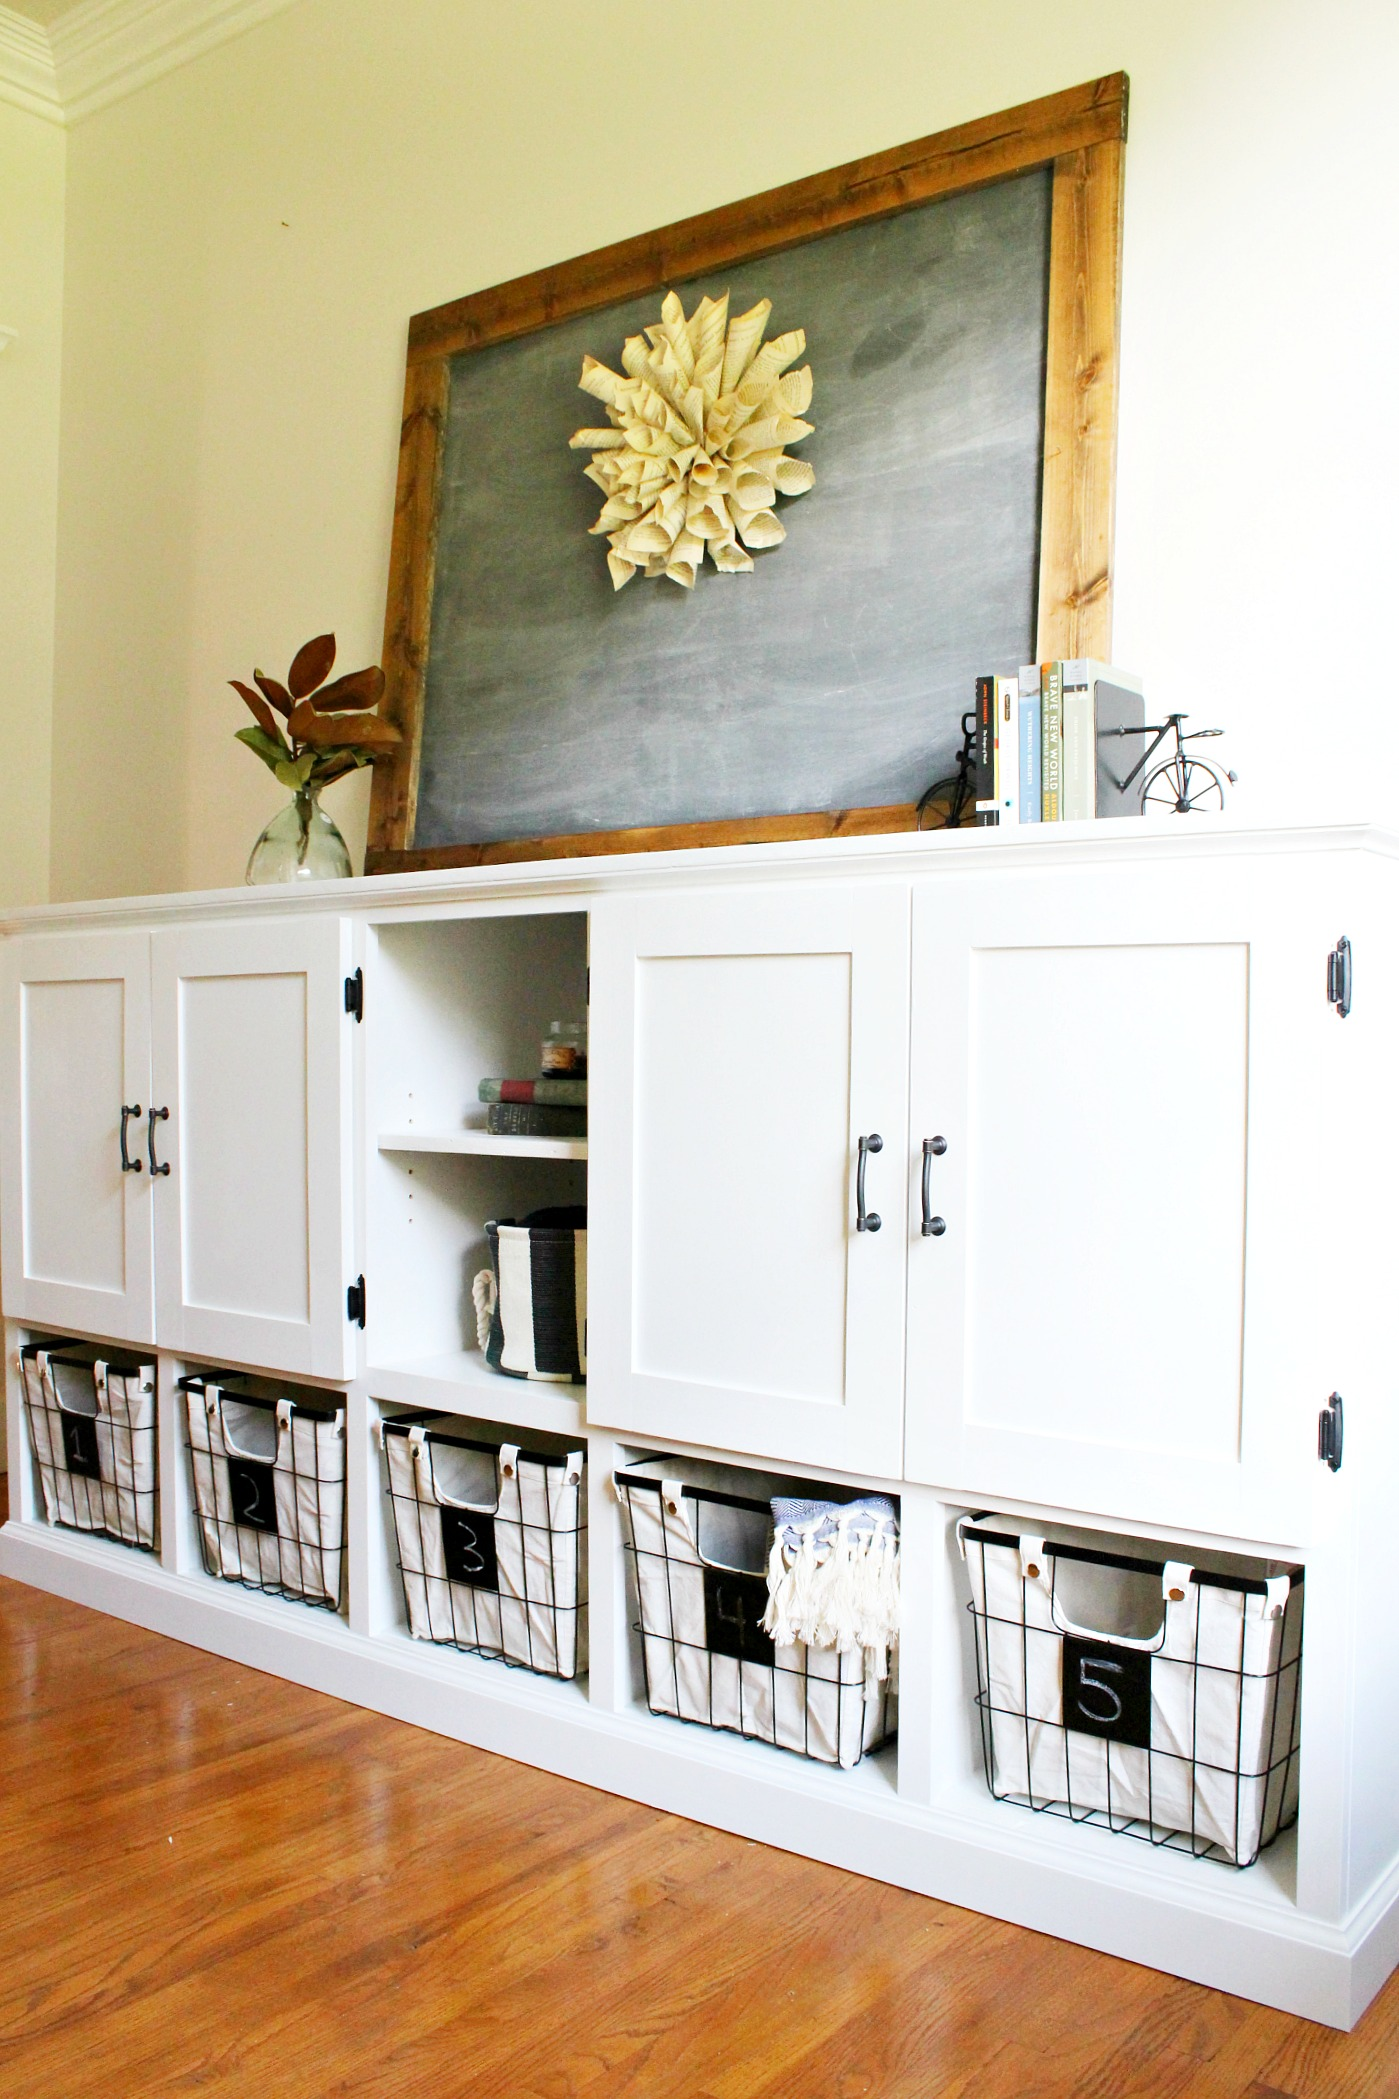 Diy Storage Console With Cabinets, How To Build Storage Cabinets For Living Room